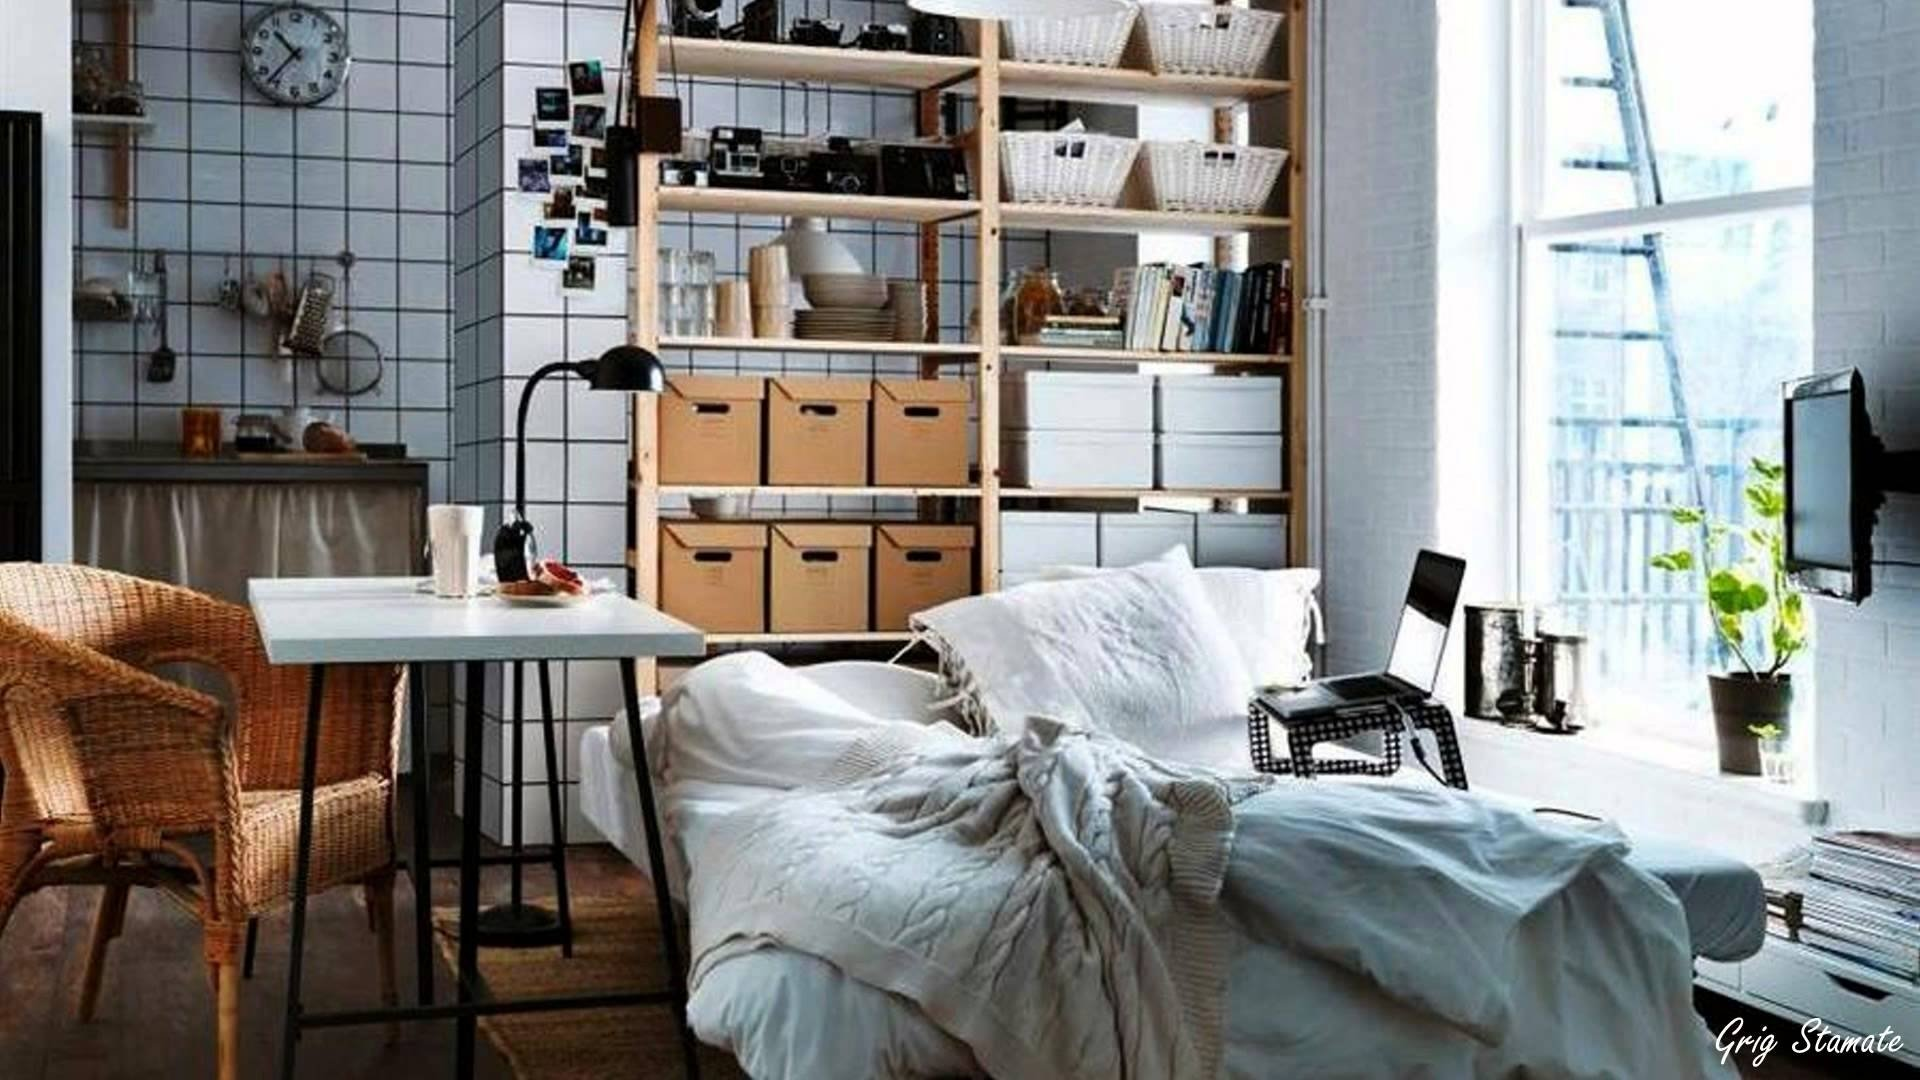 10 Nice Storage Ideas For Small Rooms small apartment storage ideas youtube 1 2020